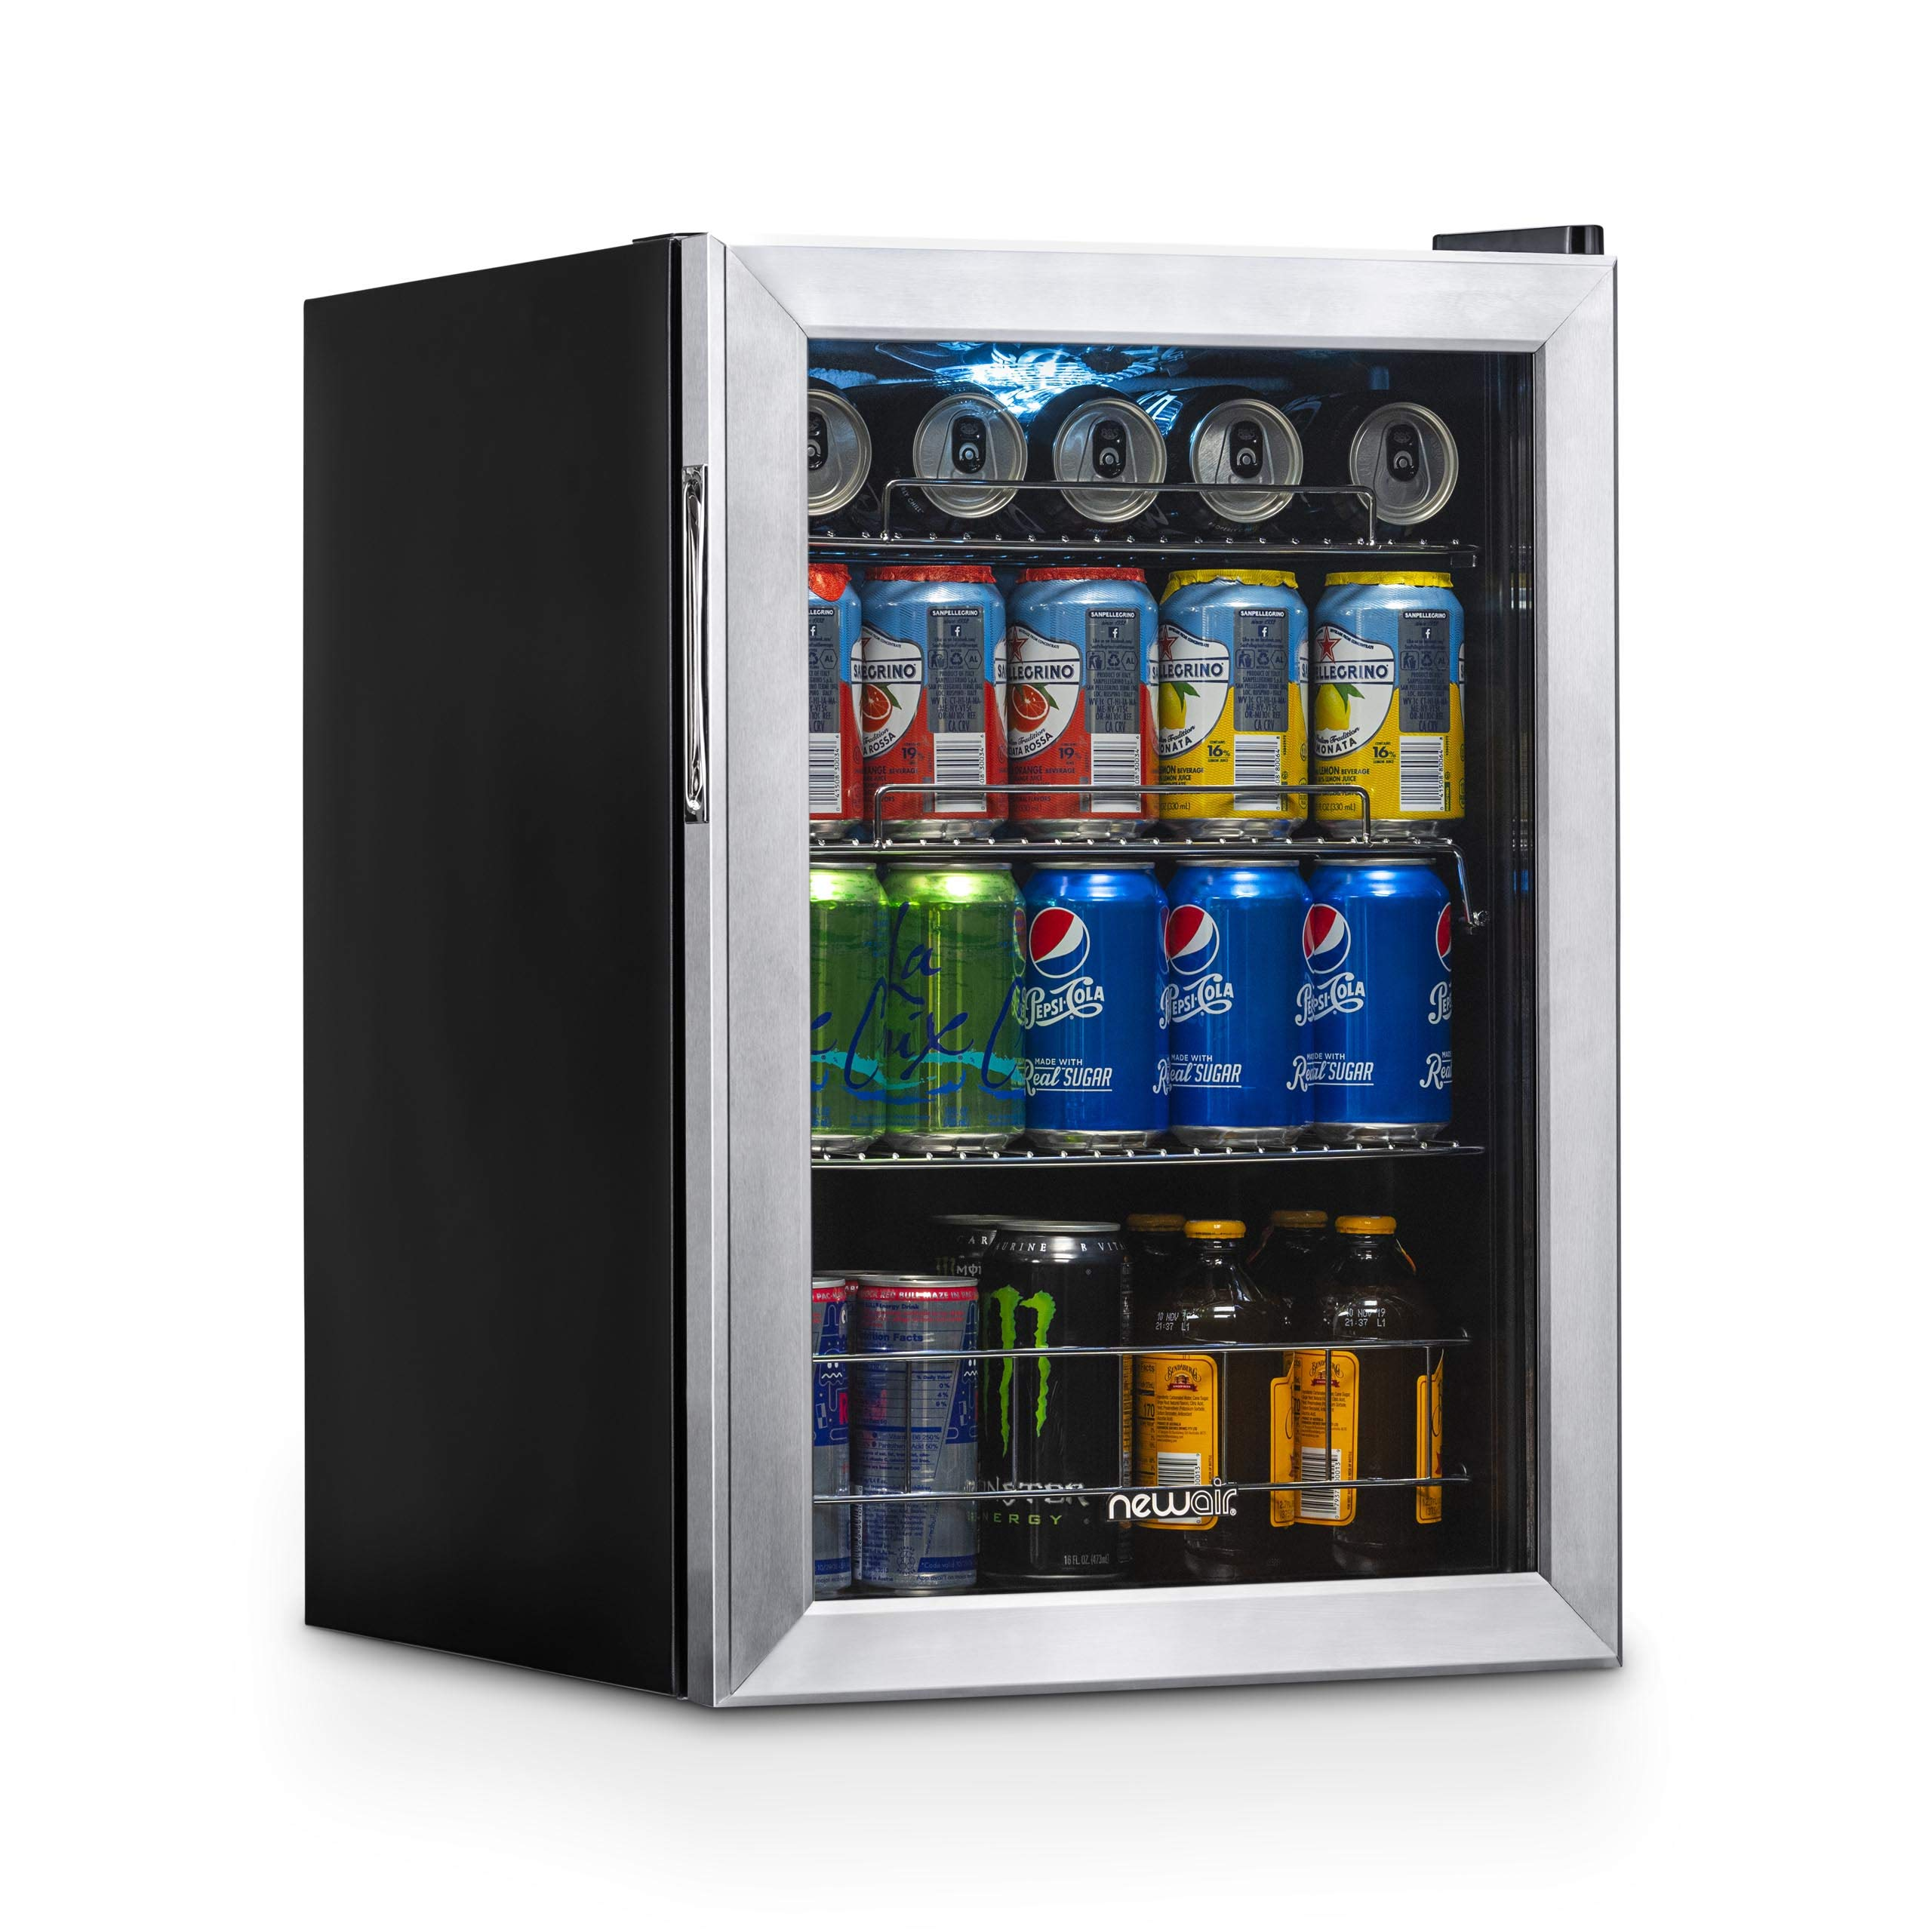 NewAir AB-850 Beverage Refrigerator 90 Can Stainless Steel